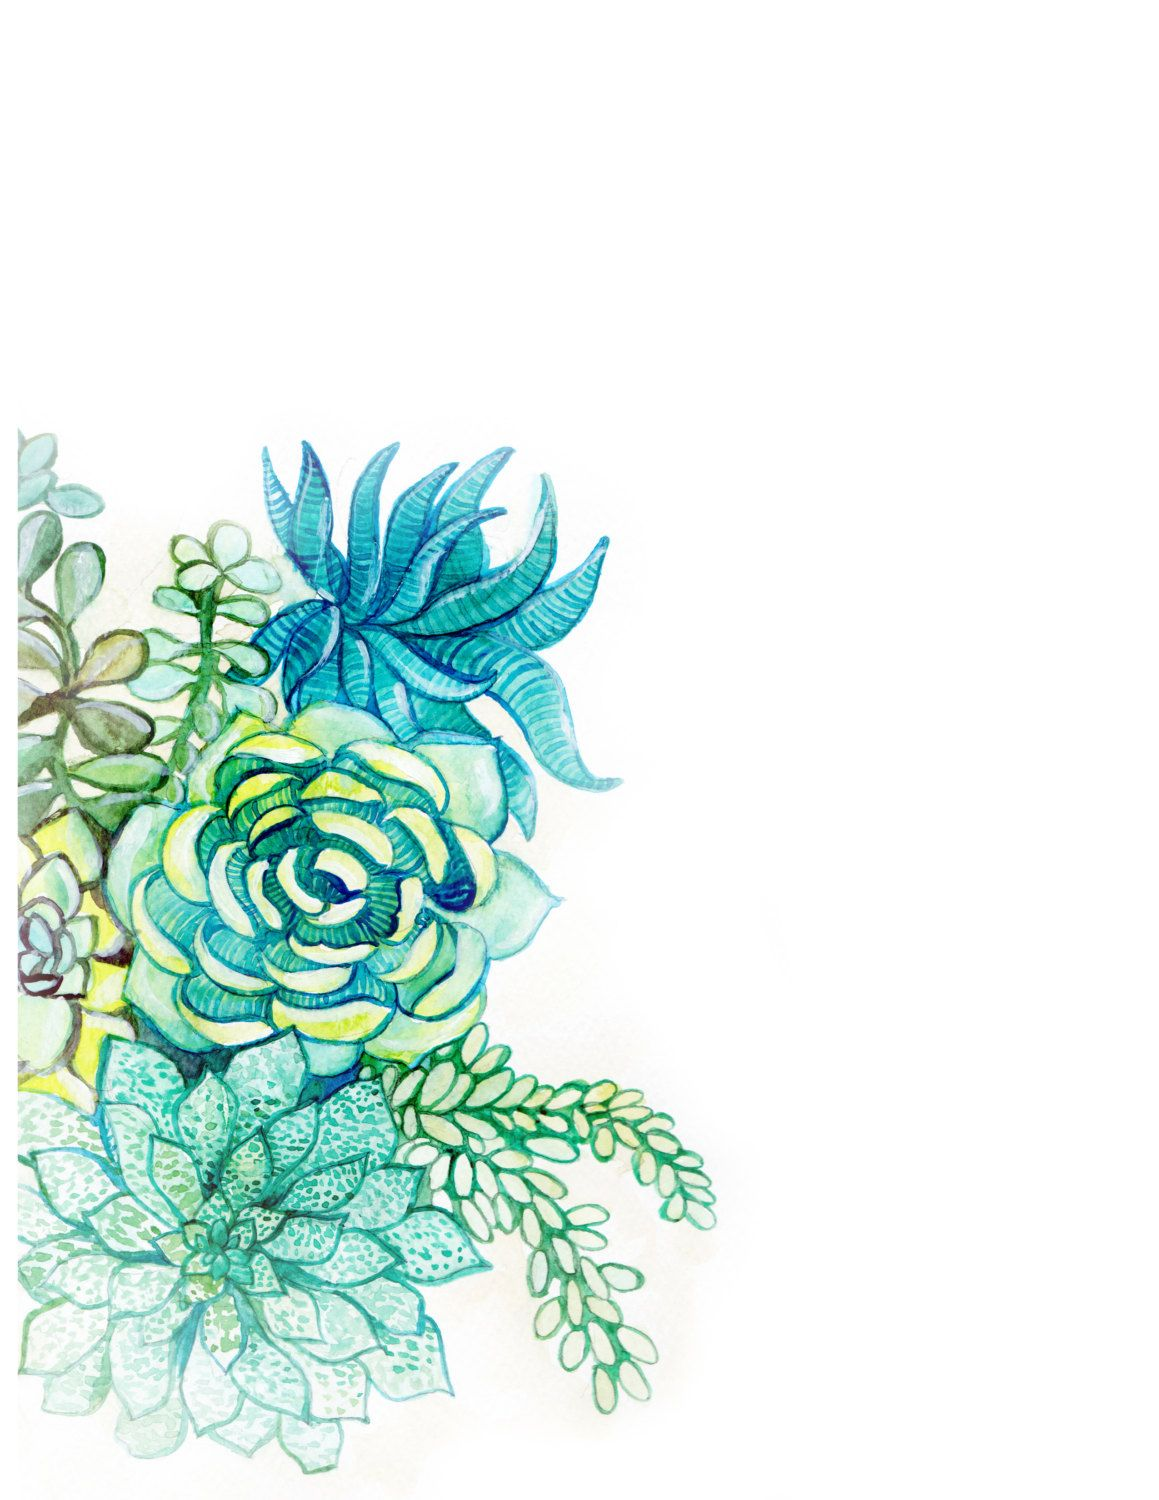 Downloadable watercolor succulents border by WaternColour